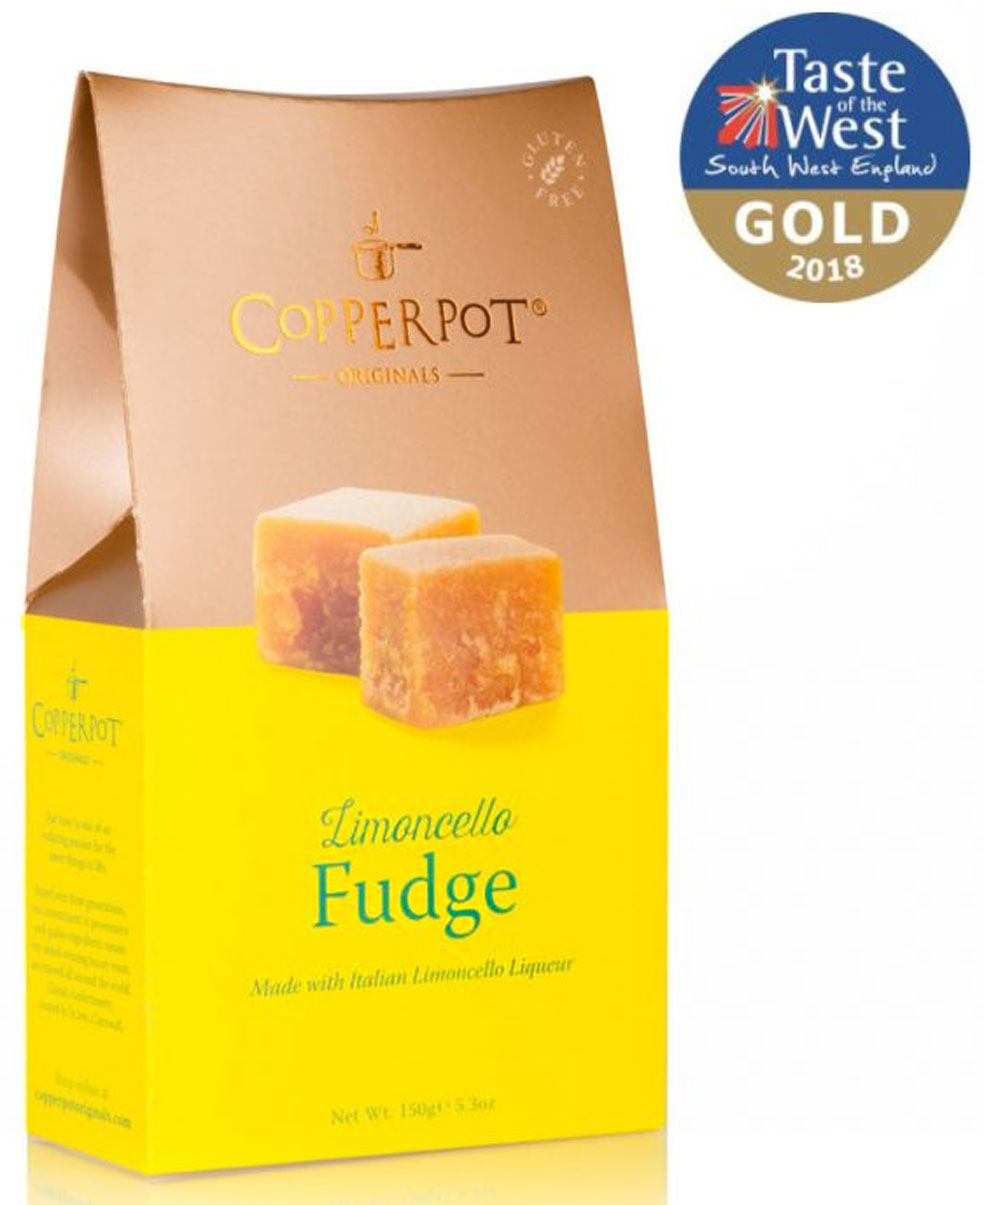 Copperpot Fudge – creamy and rich